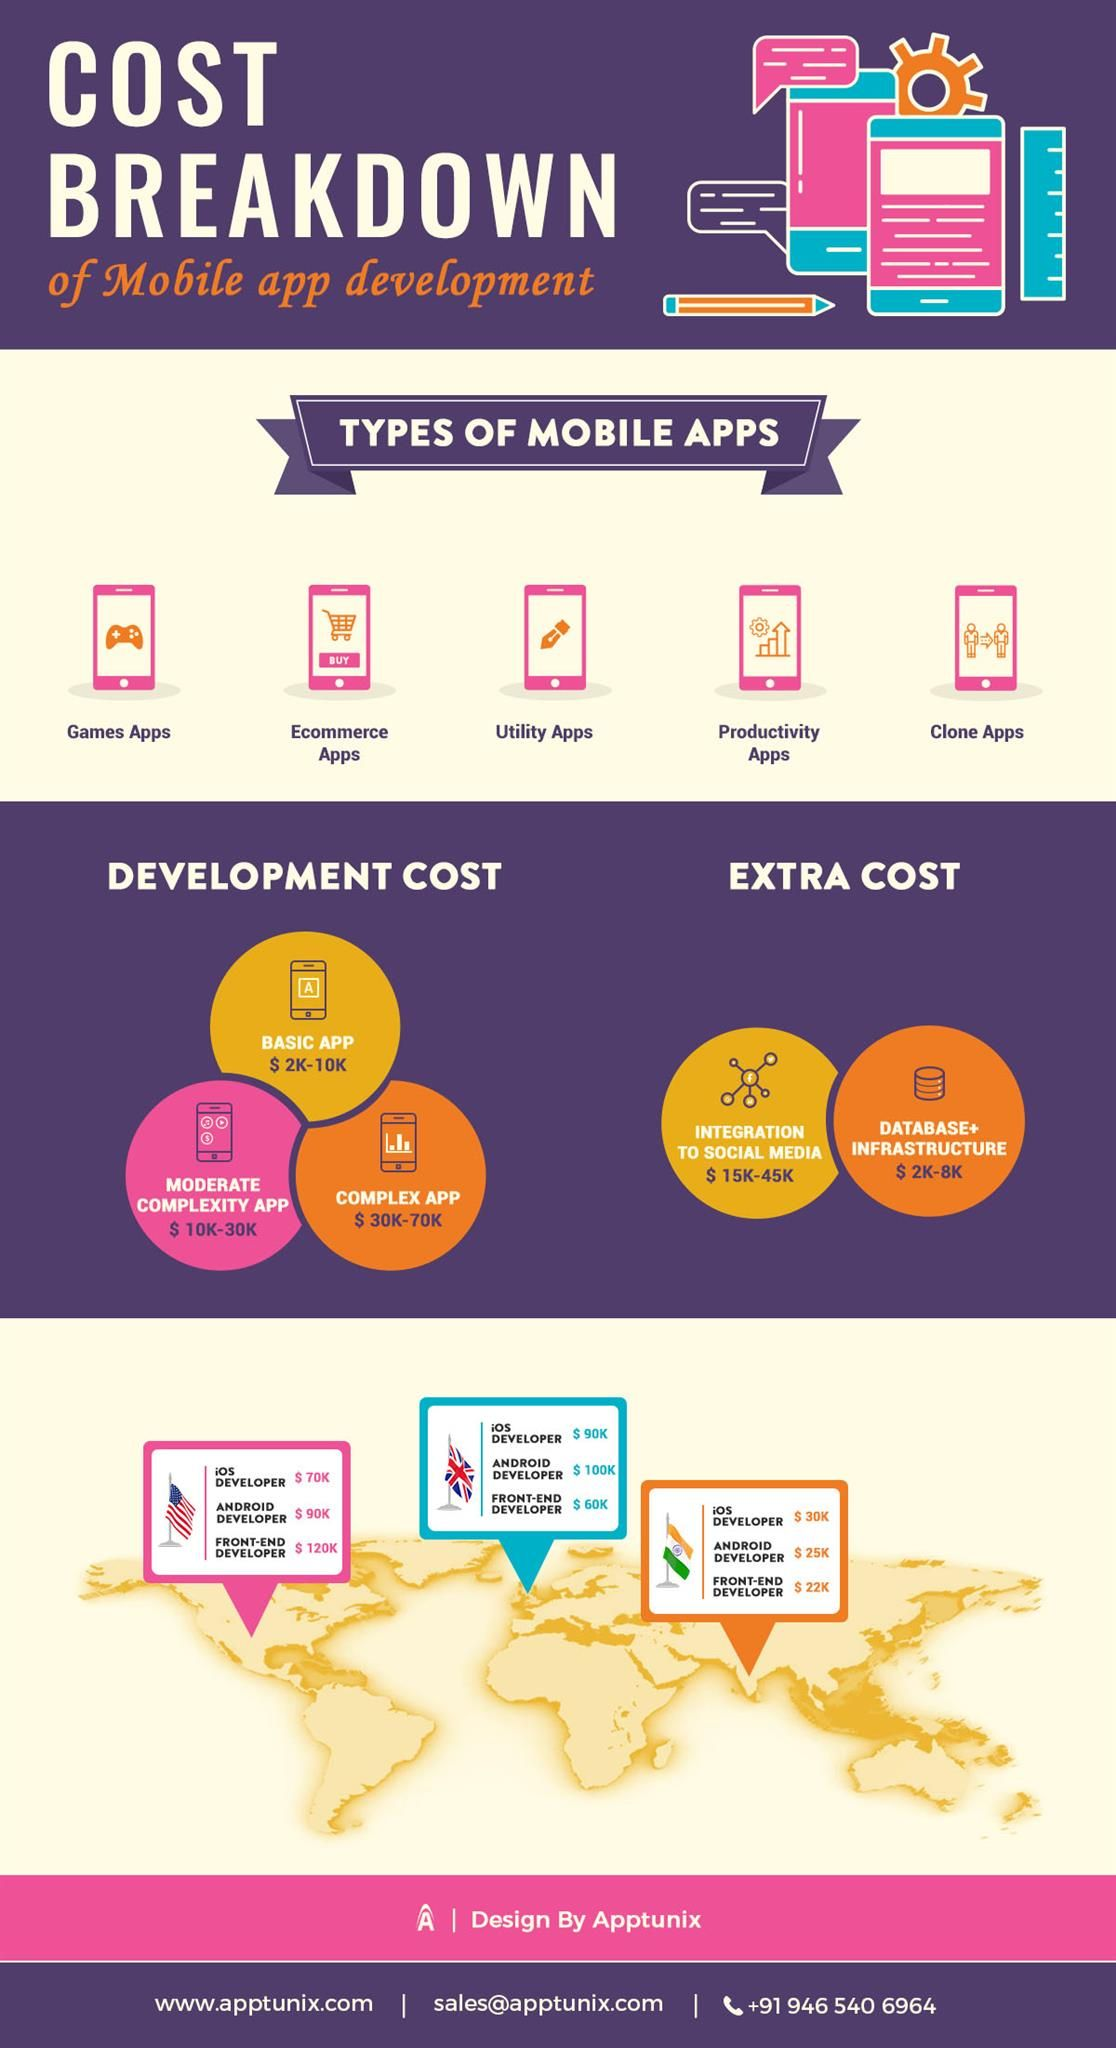 Ask expert iOS App Developers the actual cost of your app